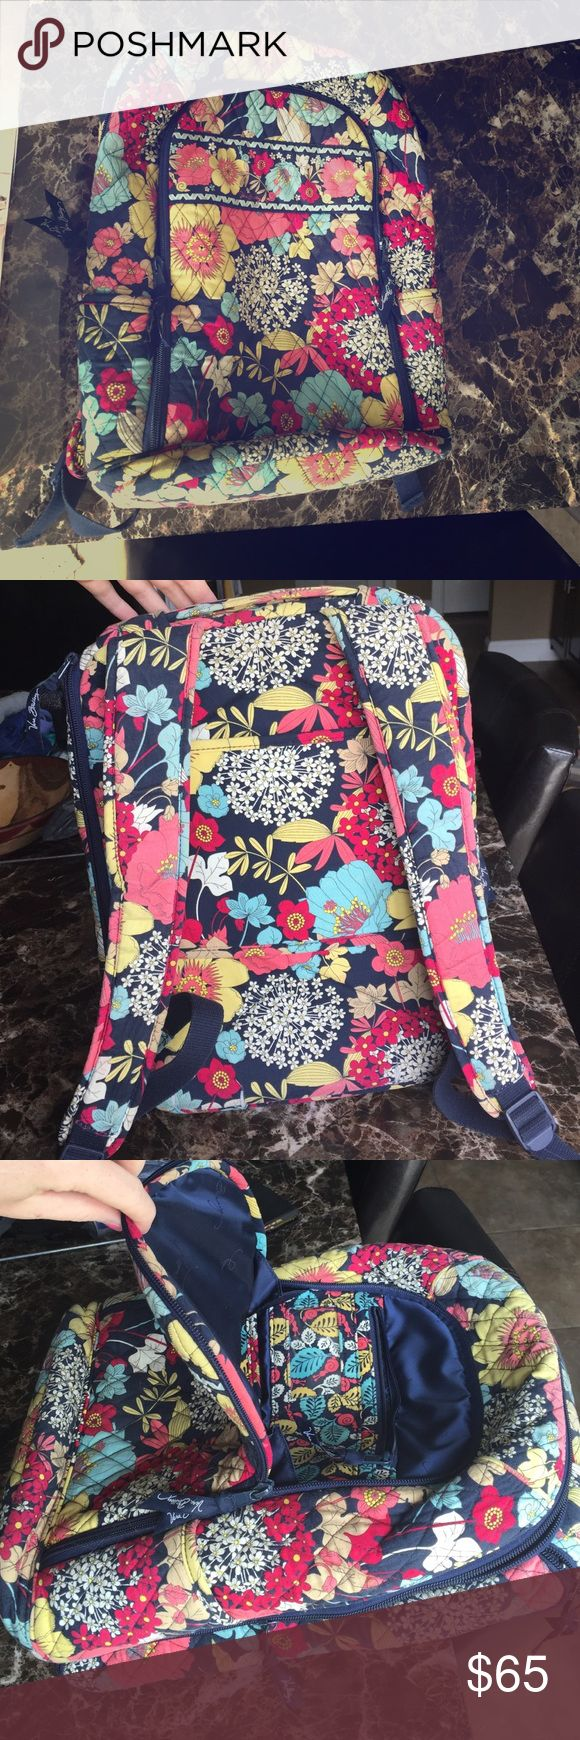 Vera Bradley Backpack! Like new Vera Bradley backpack! Barely used! It has a laptop compartment, ID department and side pouches! Great backpack for all ages!! Vera Bradley Bags Backpacks